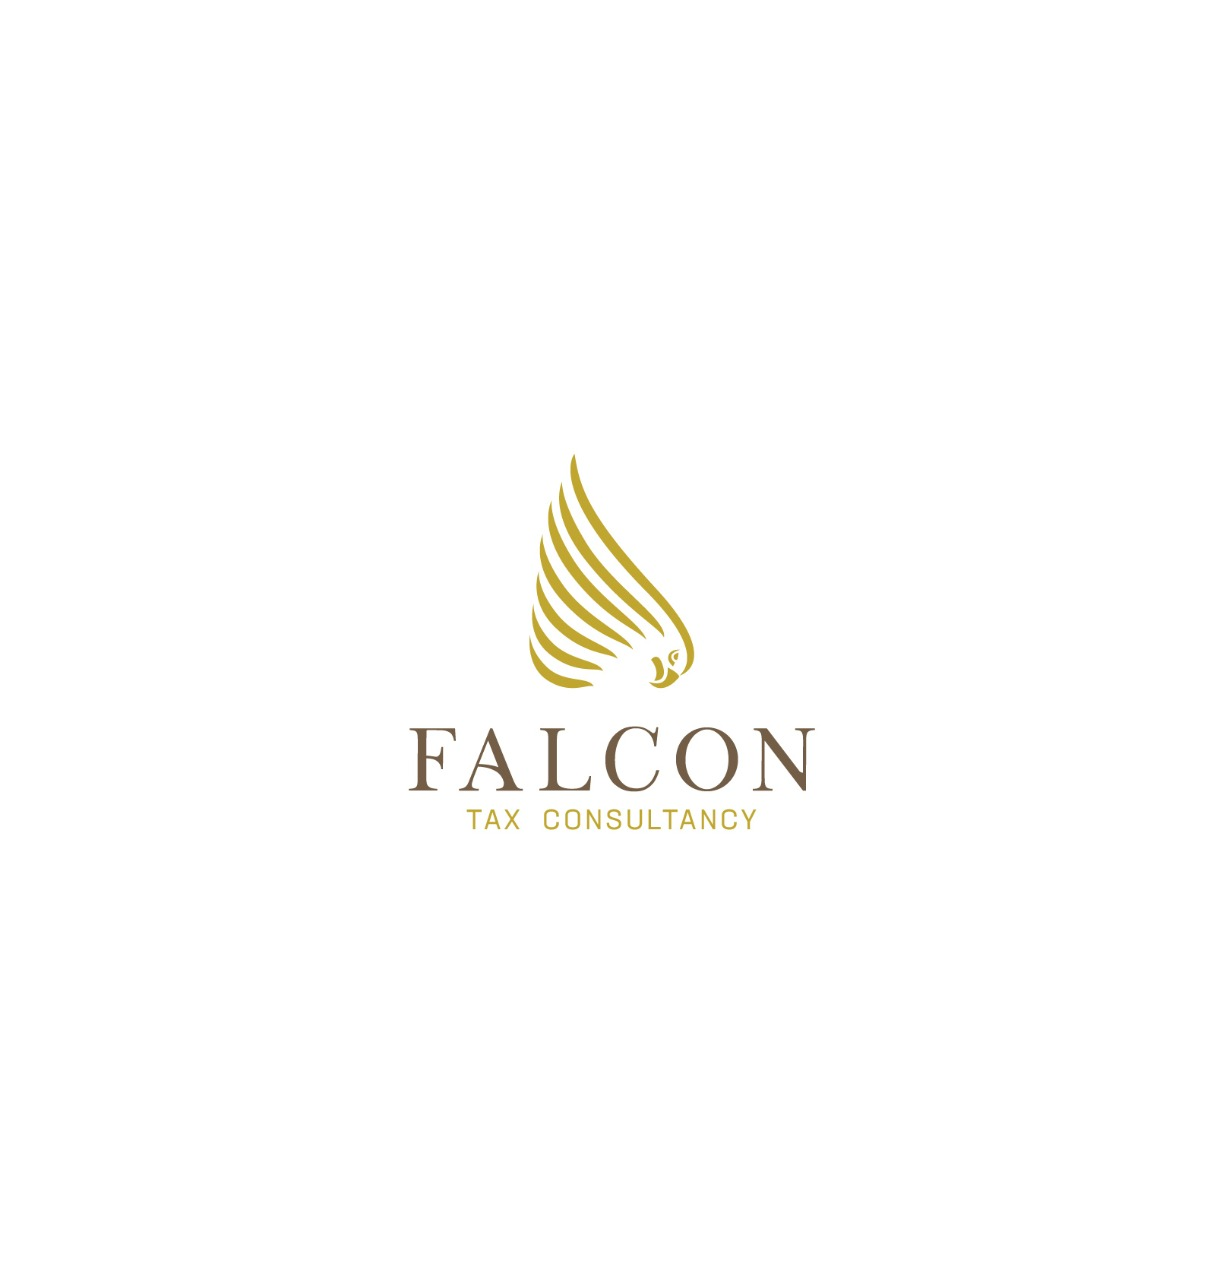 Falcon Tax Consultancy